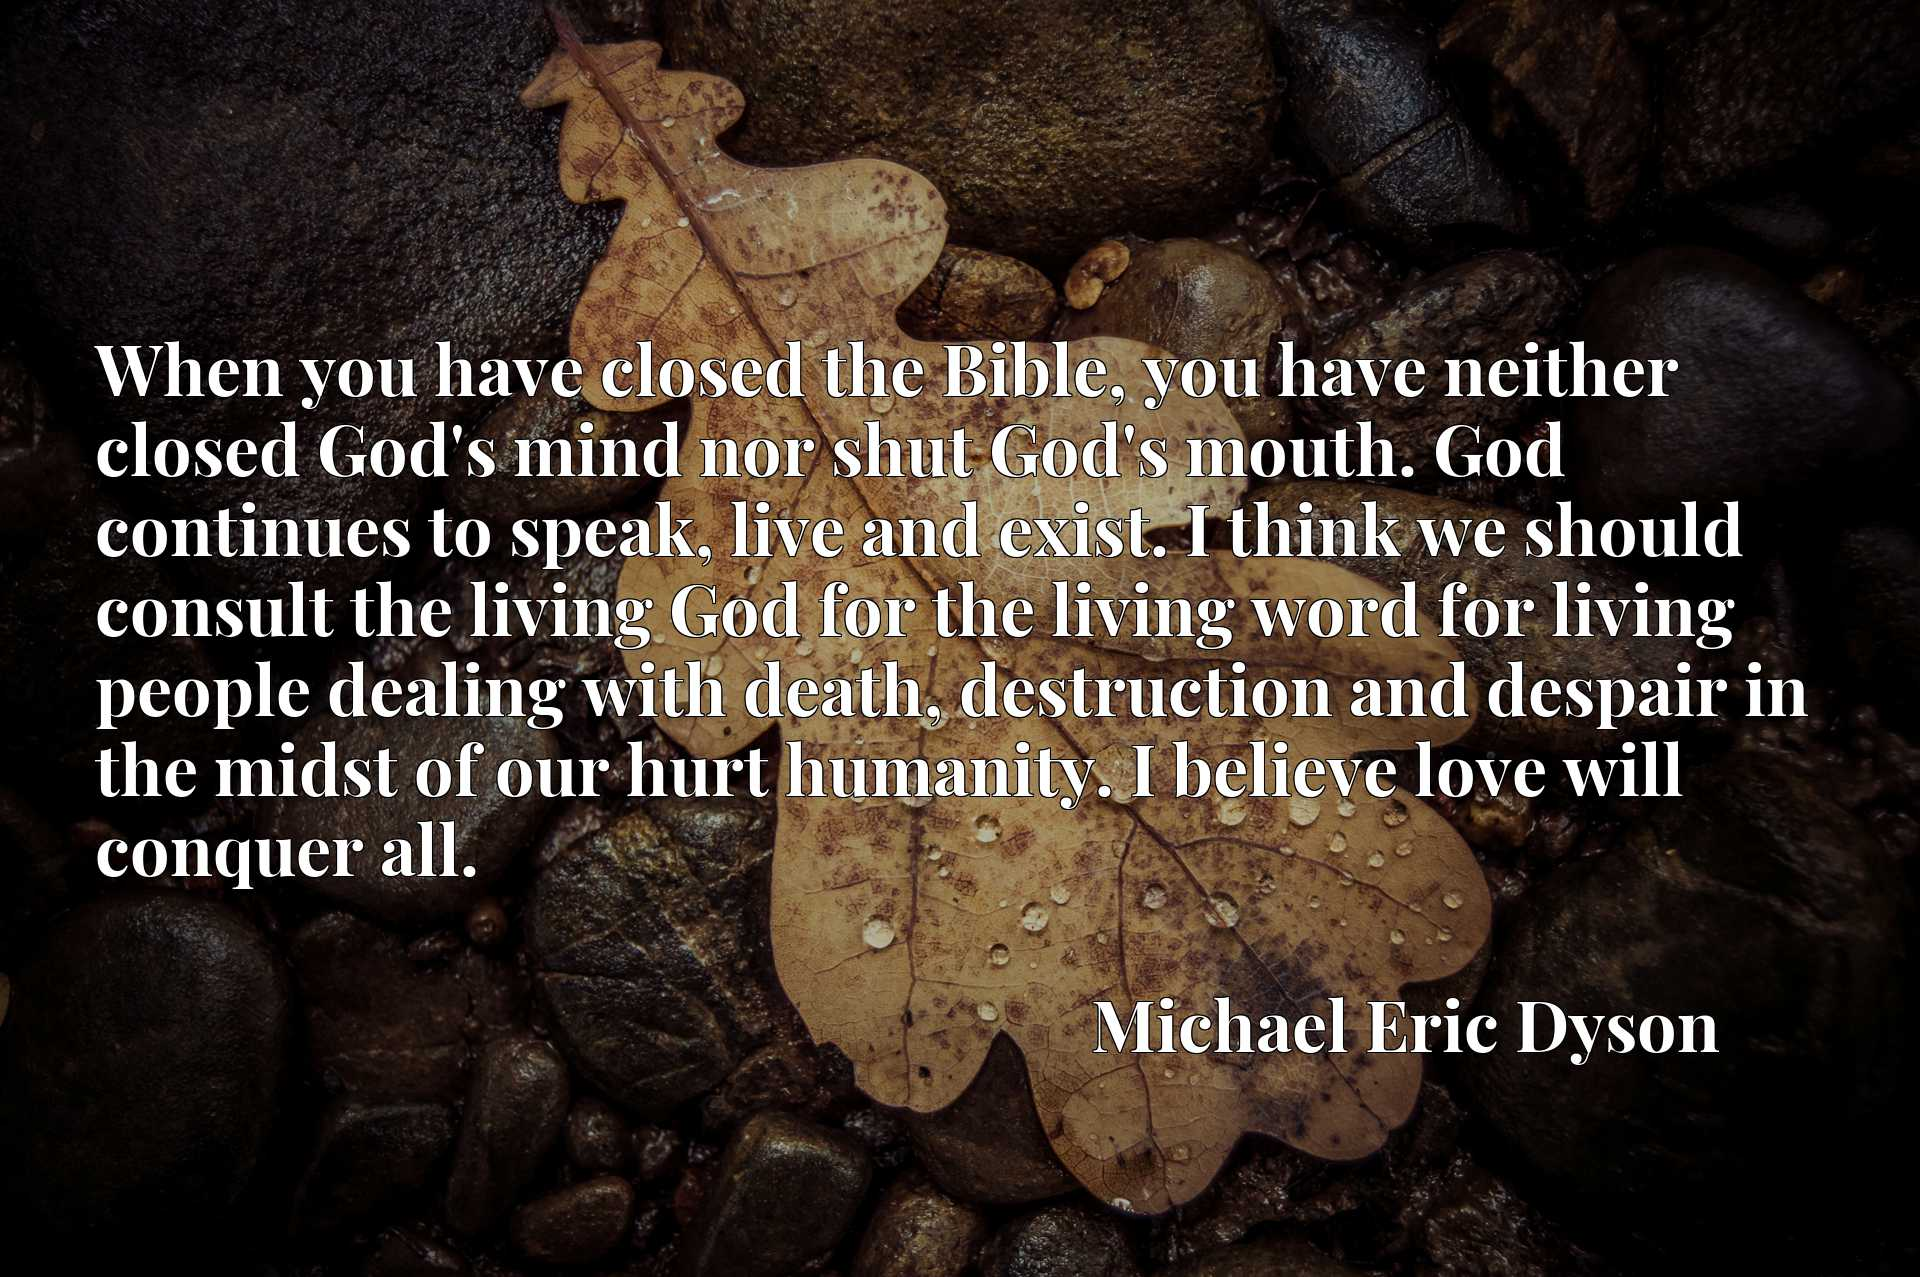 When you have closed the Bible, you have neither closed God's mind nor shut God's mouth. God continues to speak, live and exist. I think we should consult the living God for the living word for living people dealing with death, destruction and despair in the midst of our hurt humanity. I believe love will conquer all.